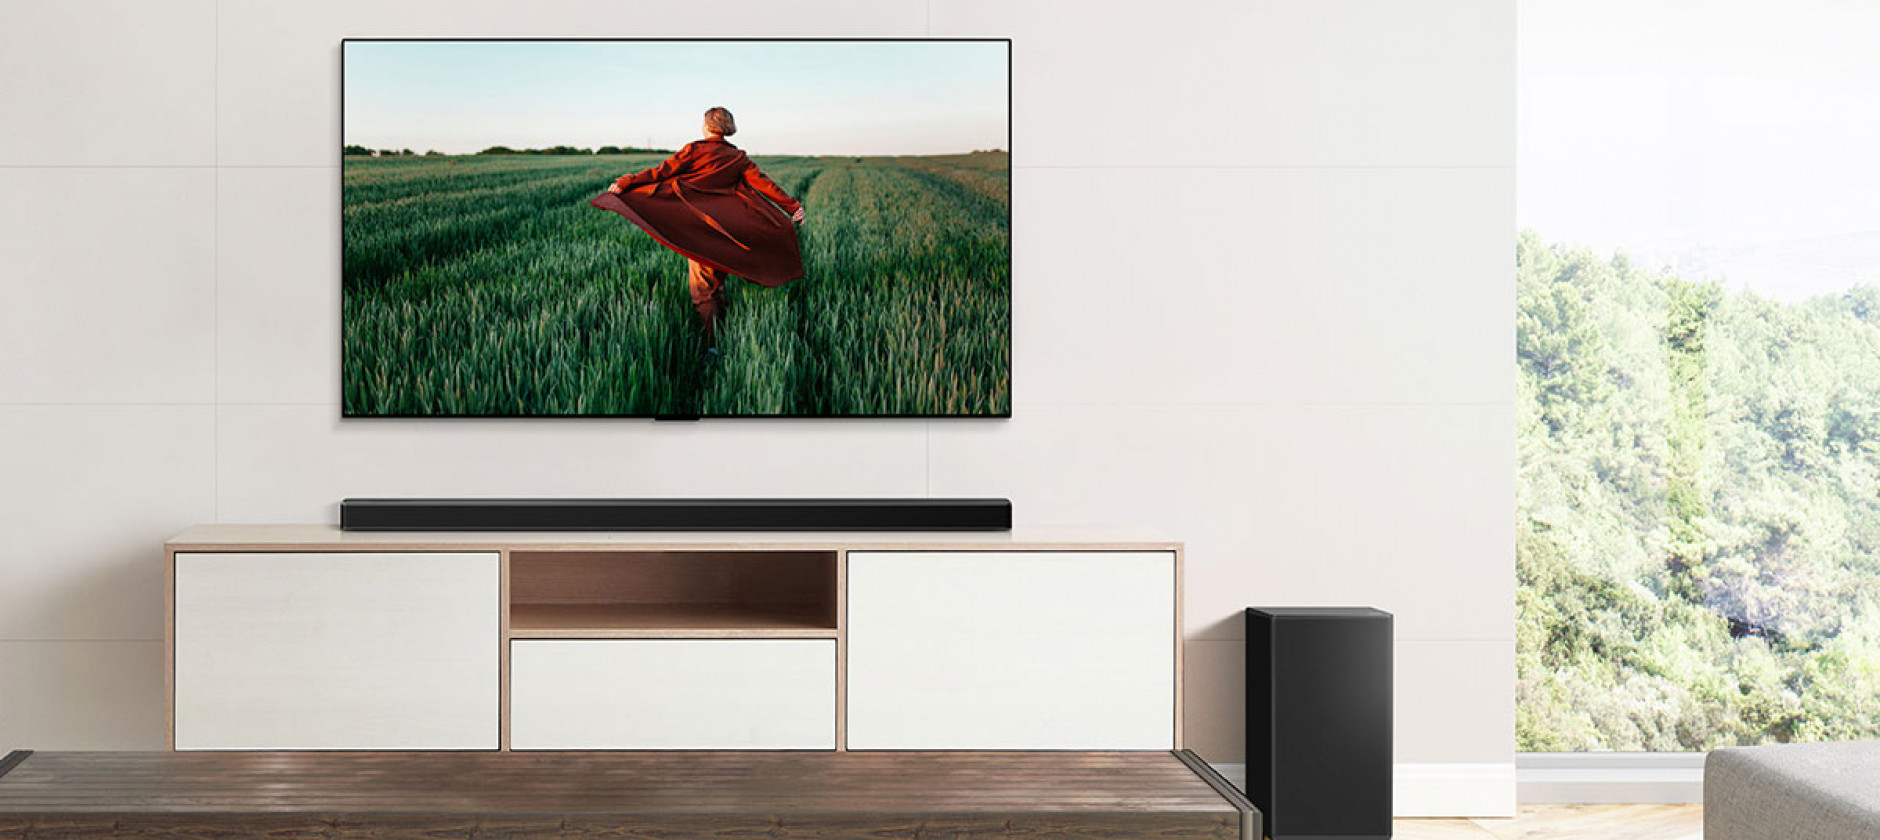 LG soundbar gamma 2021, funzioni intelligenti e design ecosostenibile